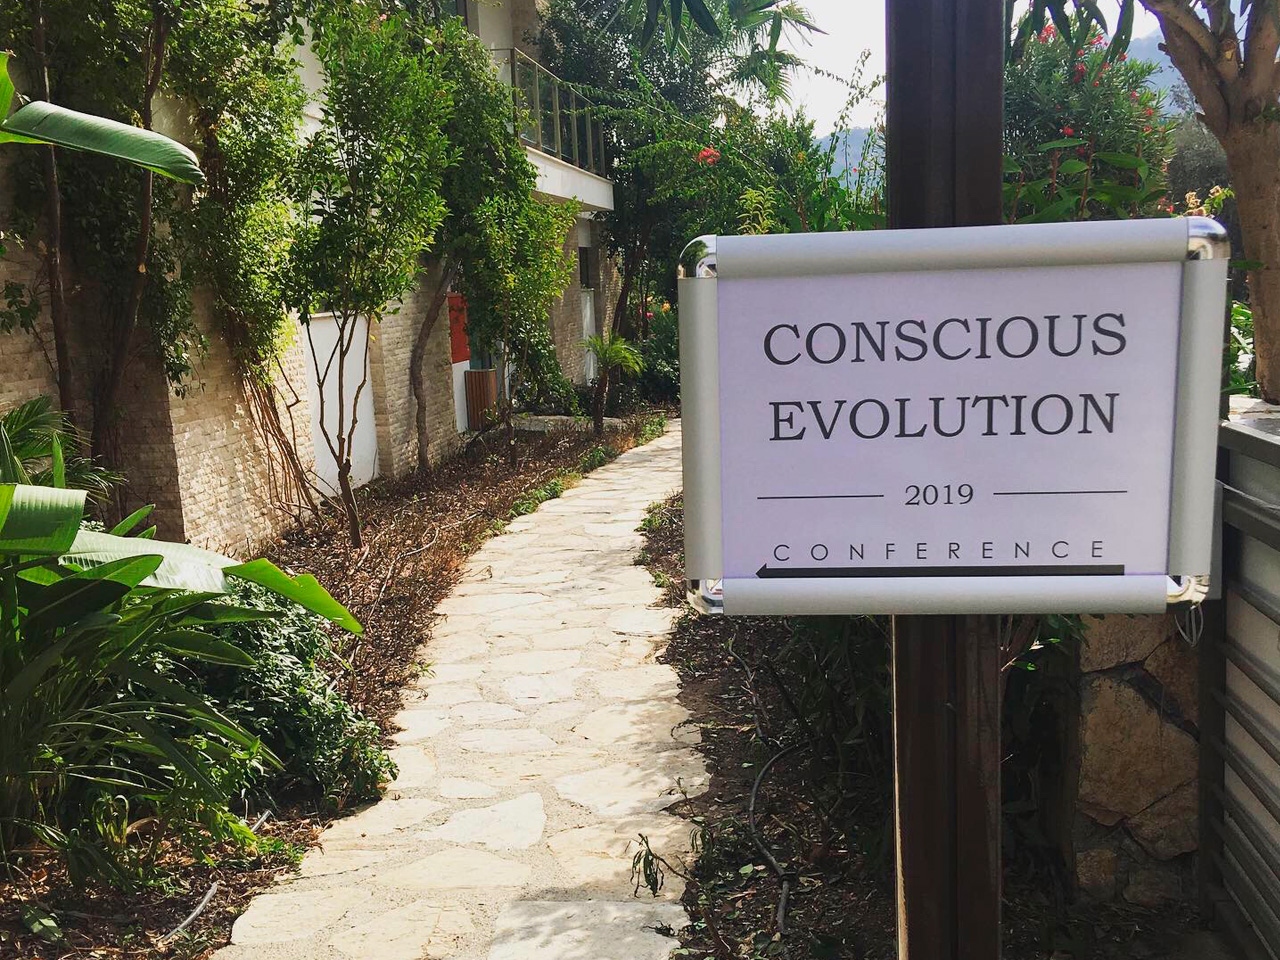 Conference-Conscious-Evolution-2019-02